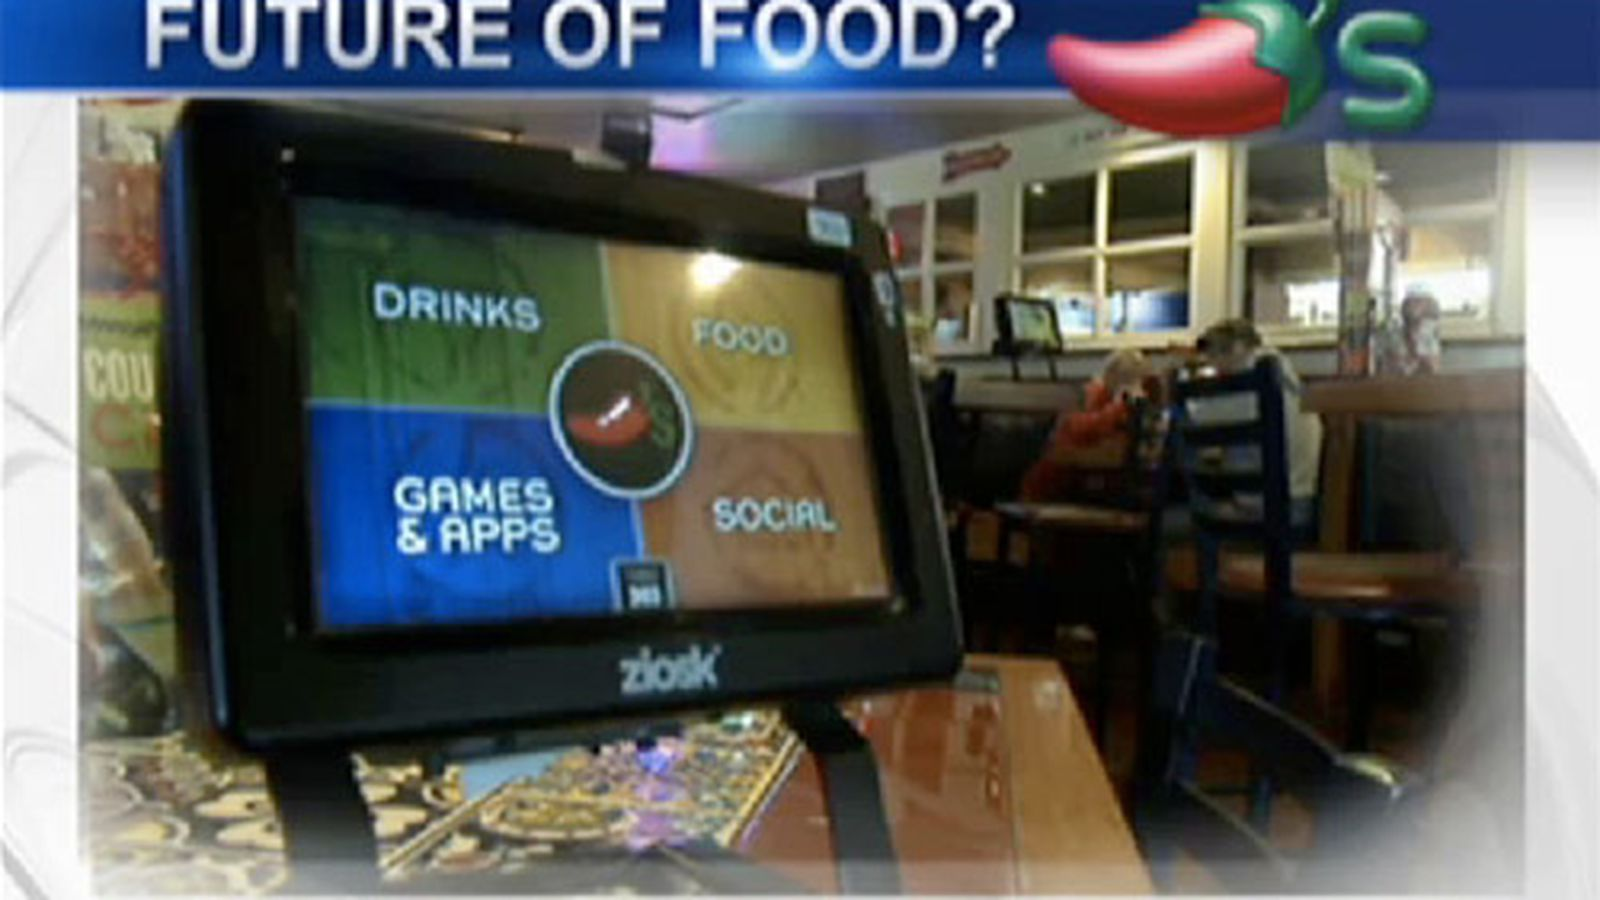 Behold The Ziosk Chili S New Tabletop Touchscreen Eater